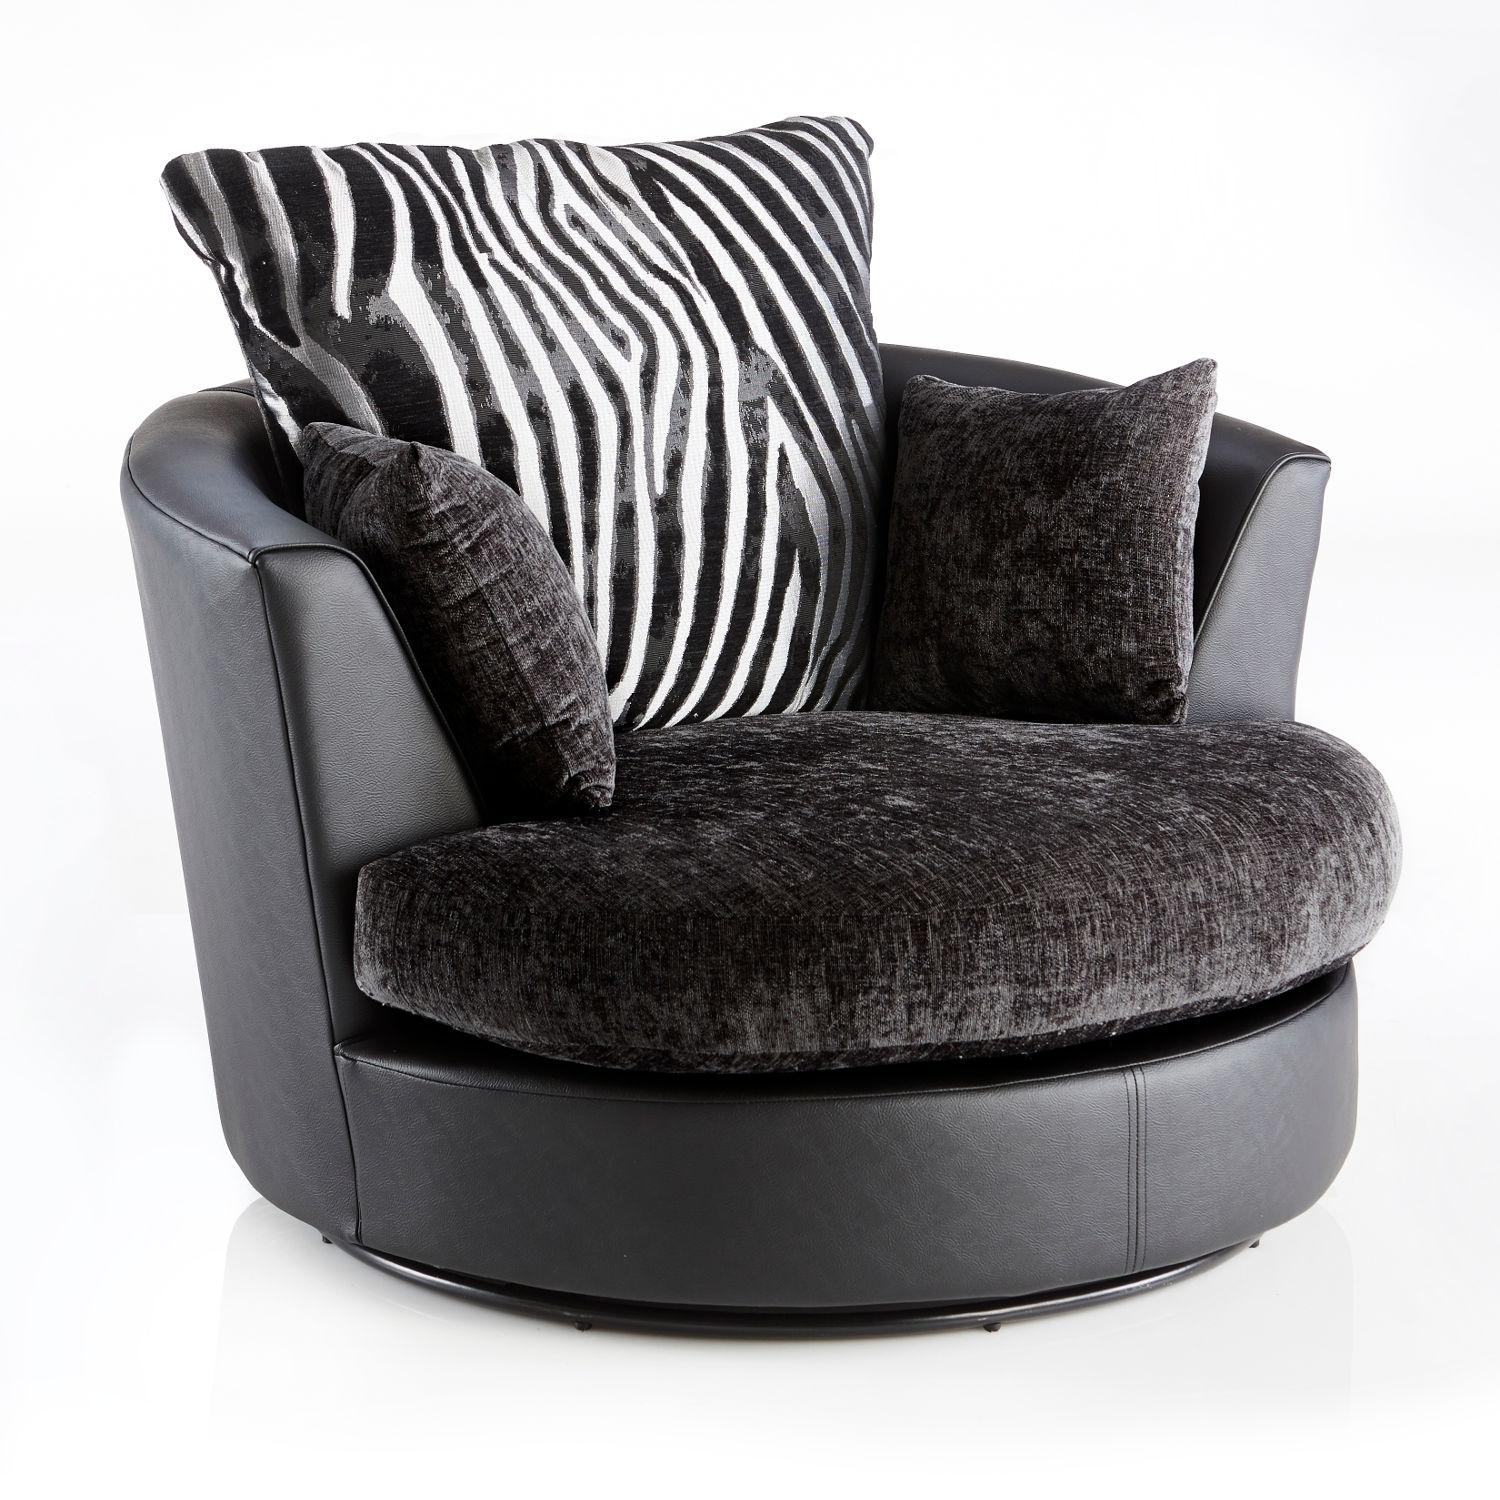 10 inspirations sofas with swivel chair sofa ideas. Black Bedroom Furniture Sets. Home Design Ideas